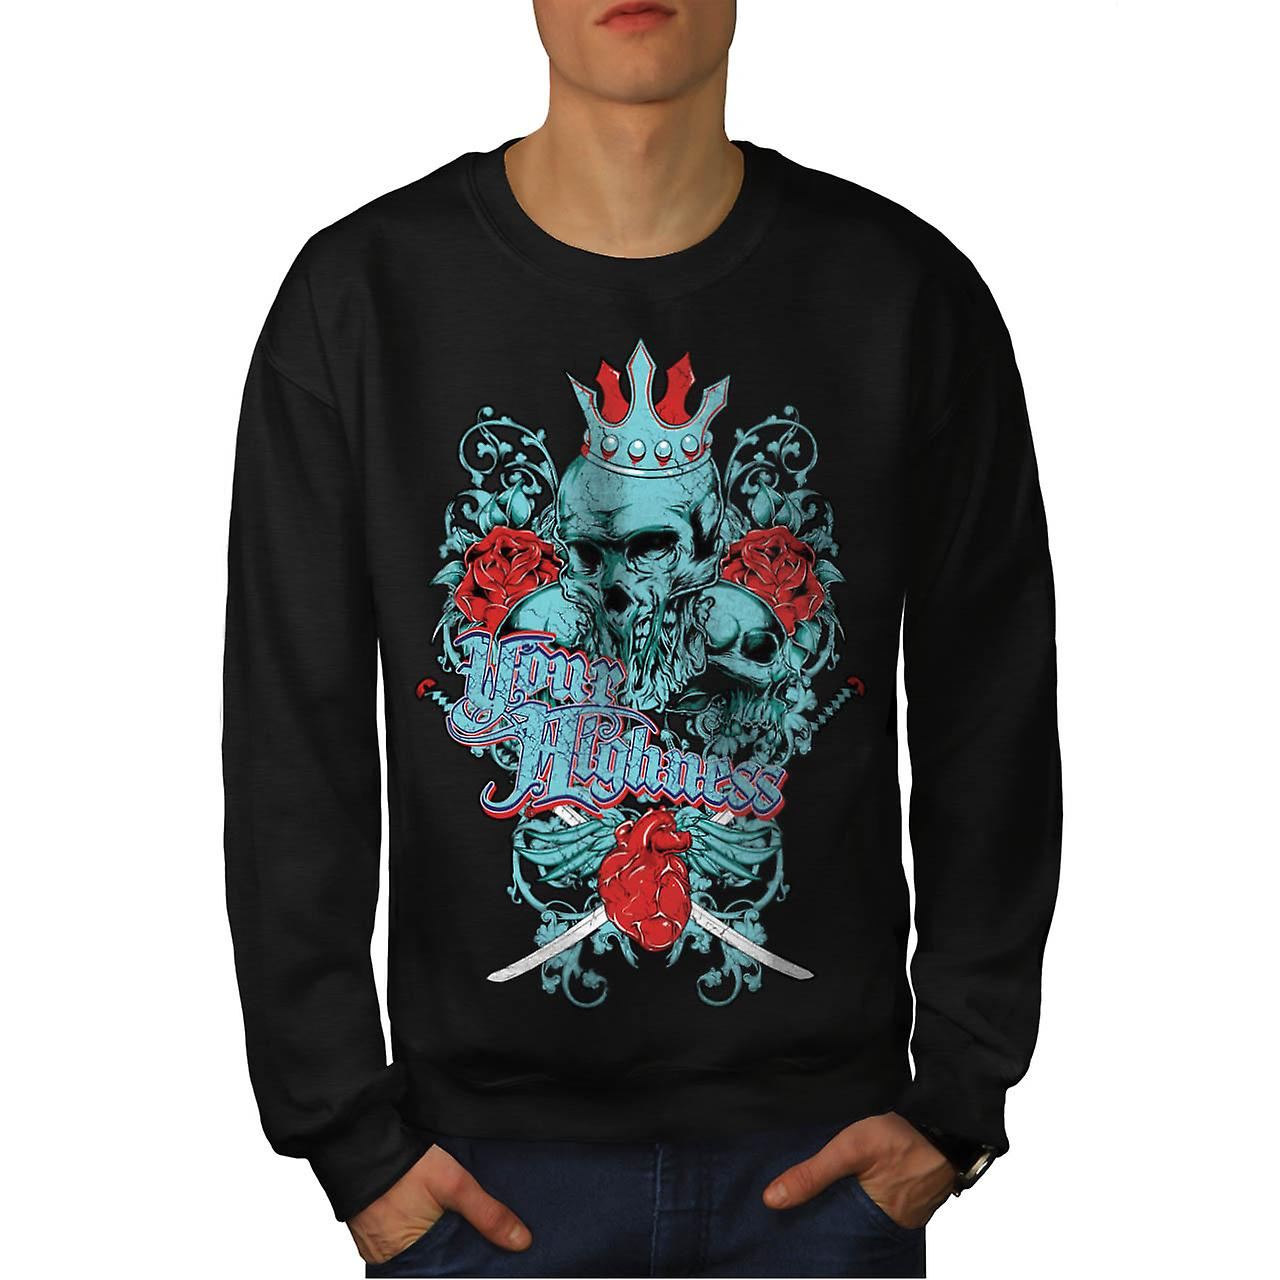 Your Highness Horror Heart Break Men Black Sweatshirt | Wellcoda